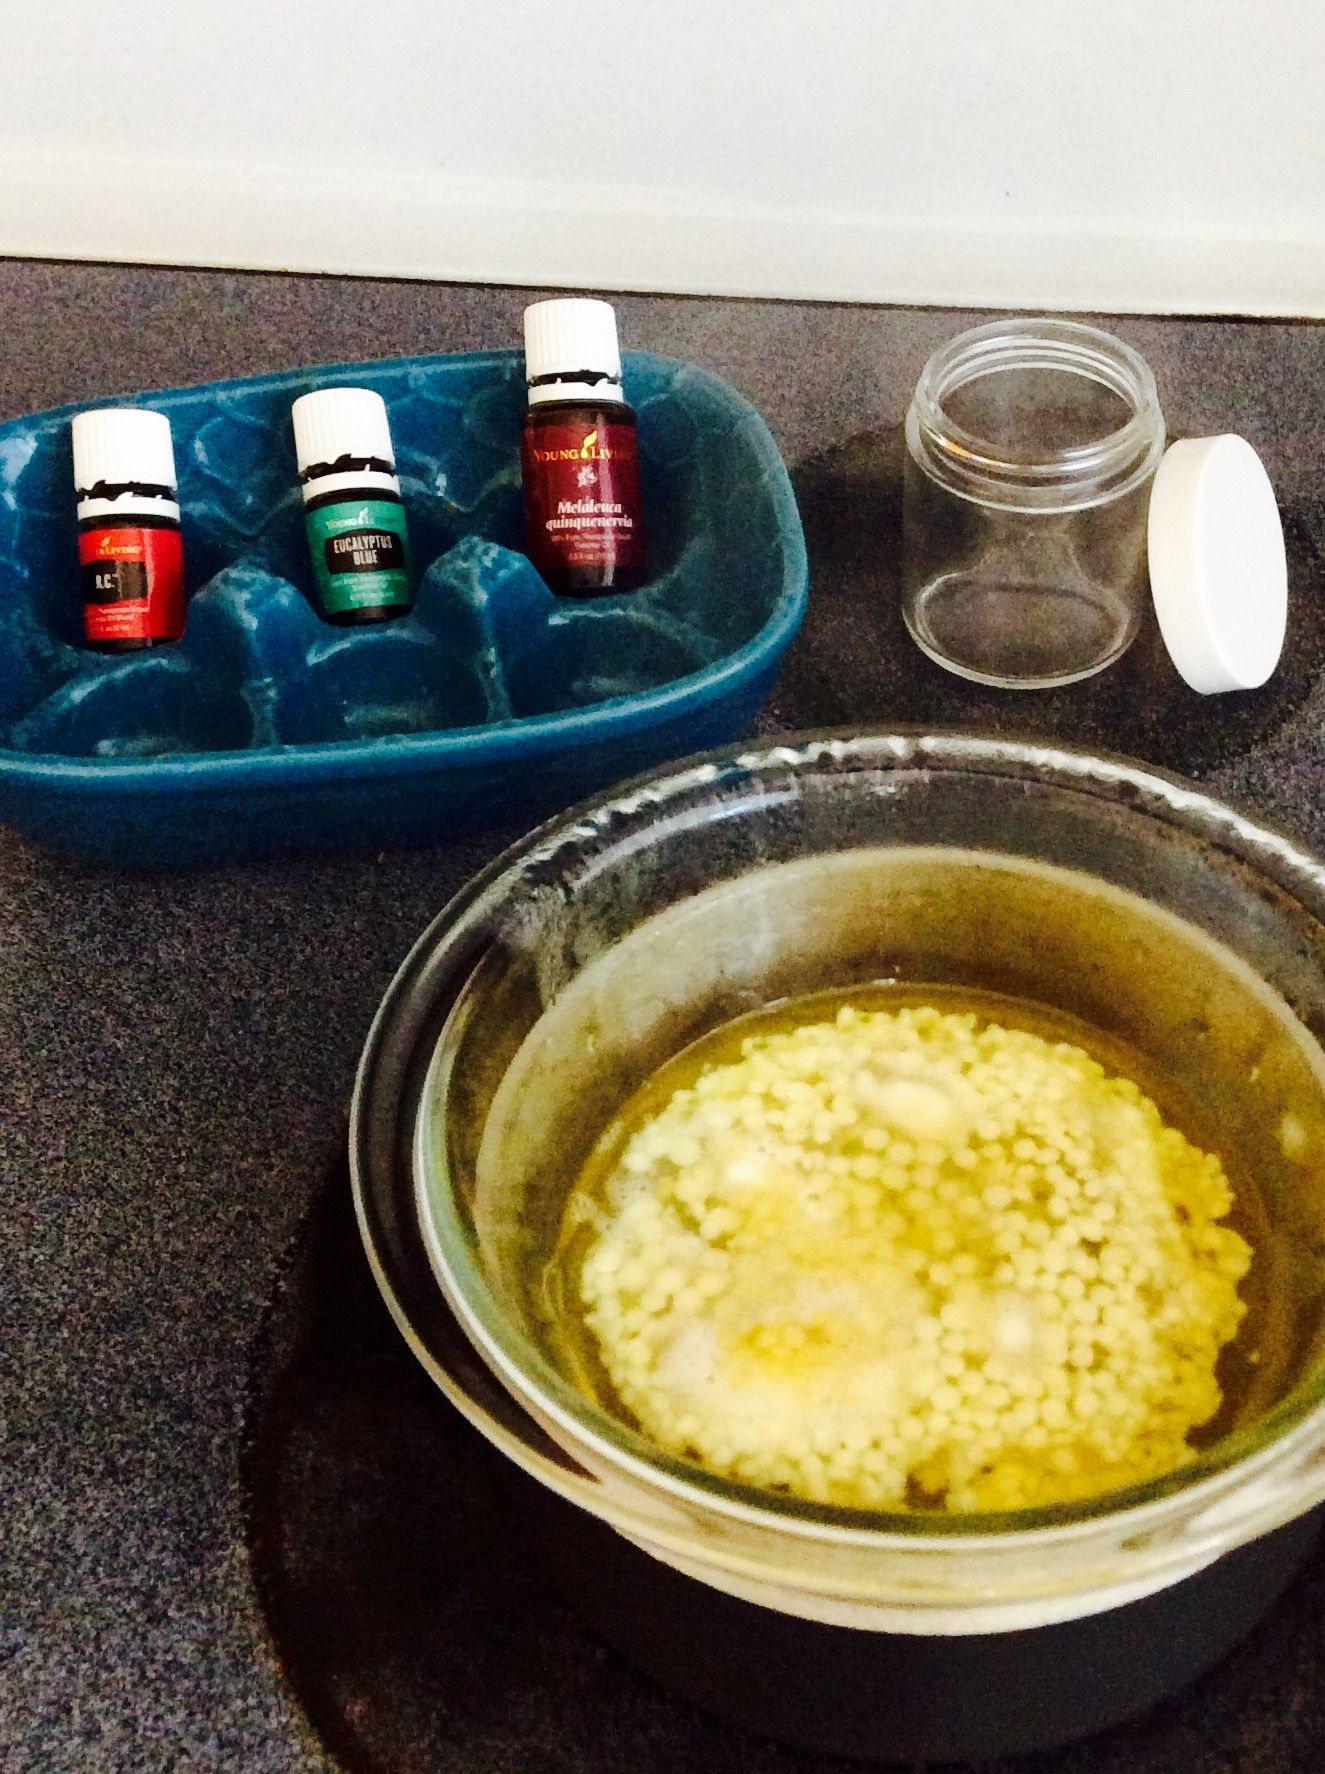 DIY Chest Rub... Melt down 5Tbs of coconut oil, 2Tbs Shea butter, 1.5 Tbs beeswax. Once melted remove from heat add EO's. Stir & pour in a container. Let stand to solidify. Apply to chest for congestion or cough. 20 drops R.C. 12 drops Eucalyptus Blue 10 drops Melaleuca Another addition could be Peppermint or Wintergreen.